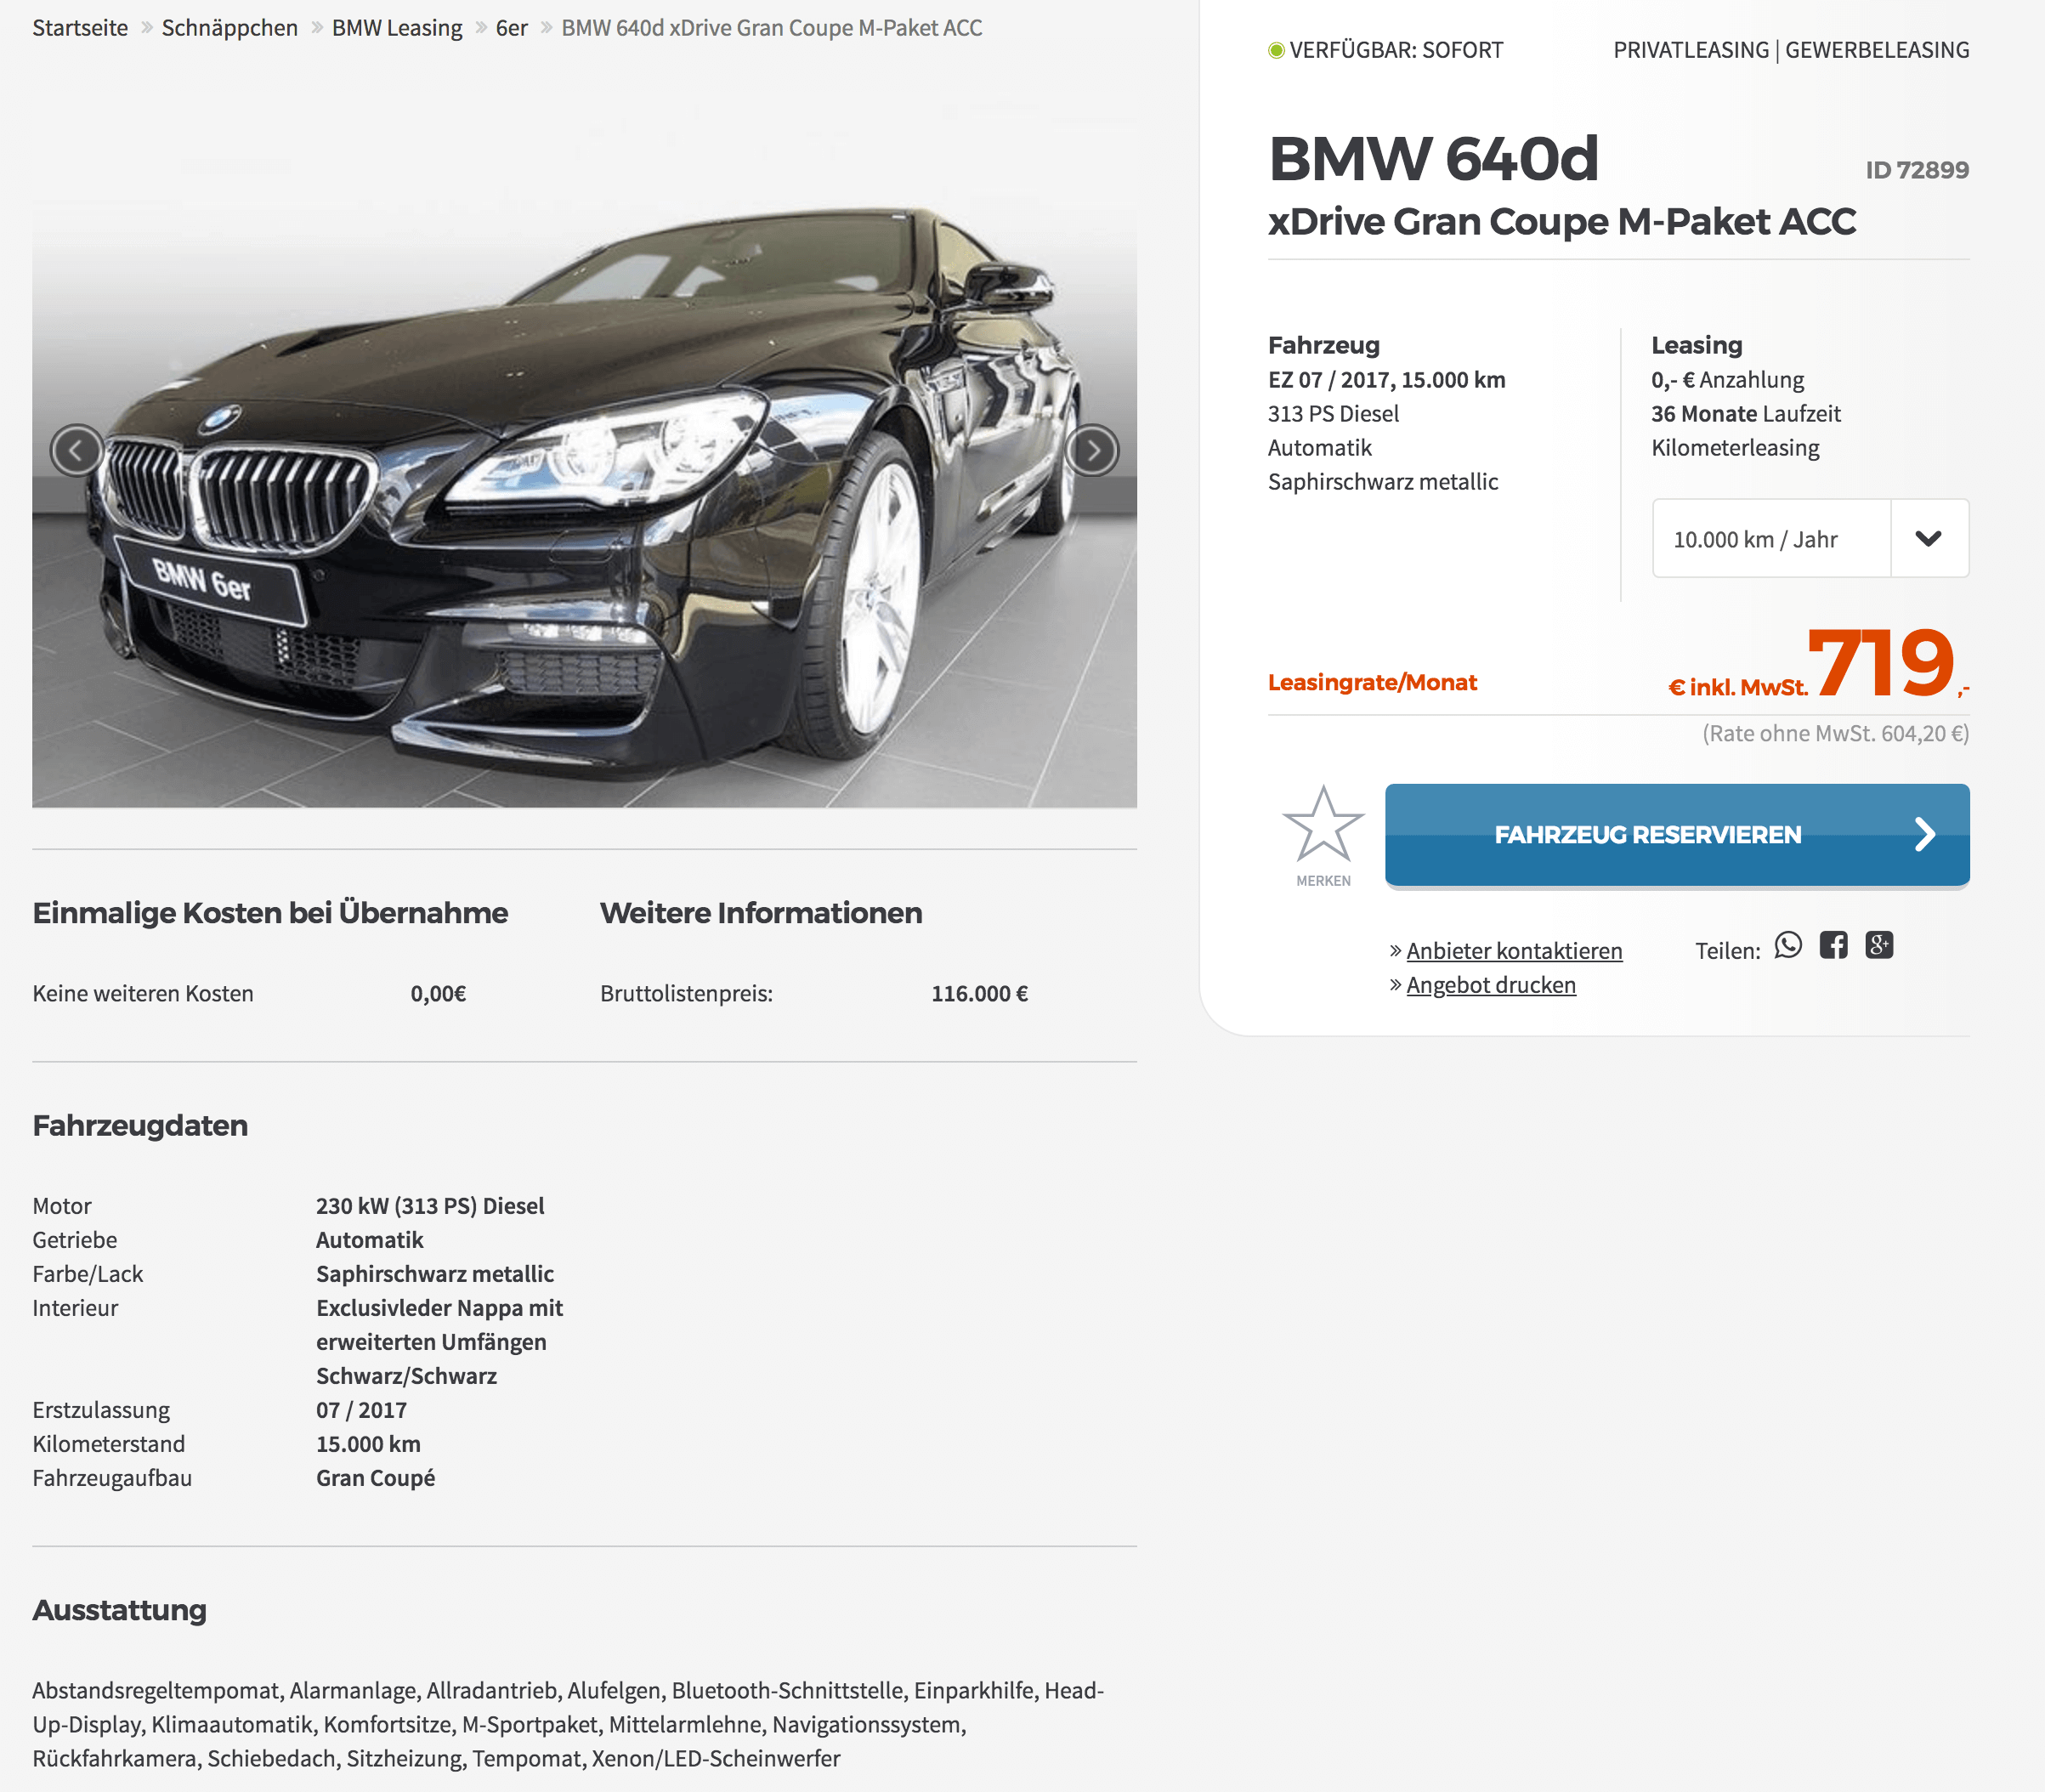 bmw 640d gran coup leasing f r 719 euro im monat brutto jahreswagen. Black Bedroom Furniture Sets. Home Design Ideas